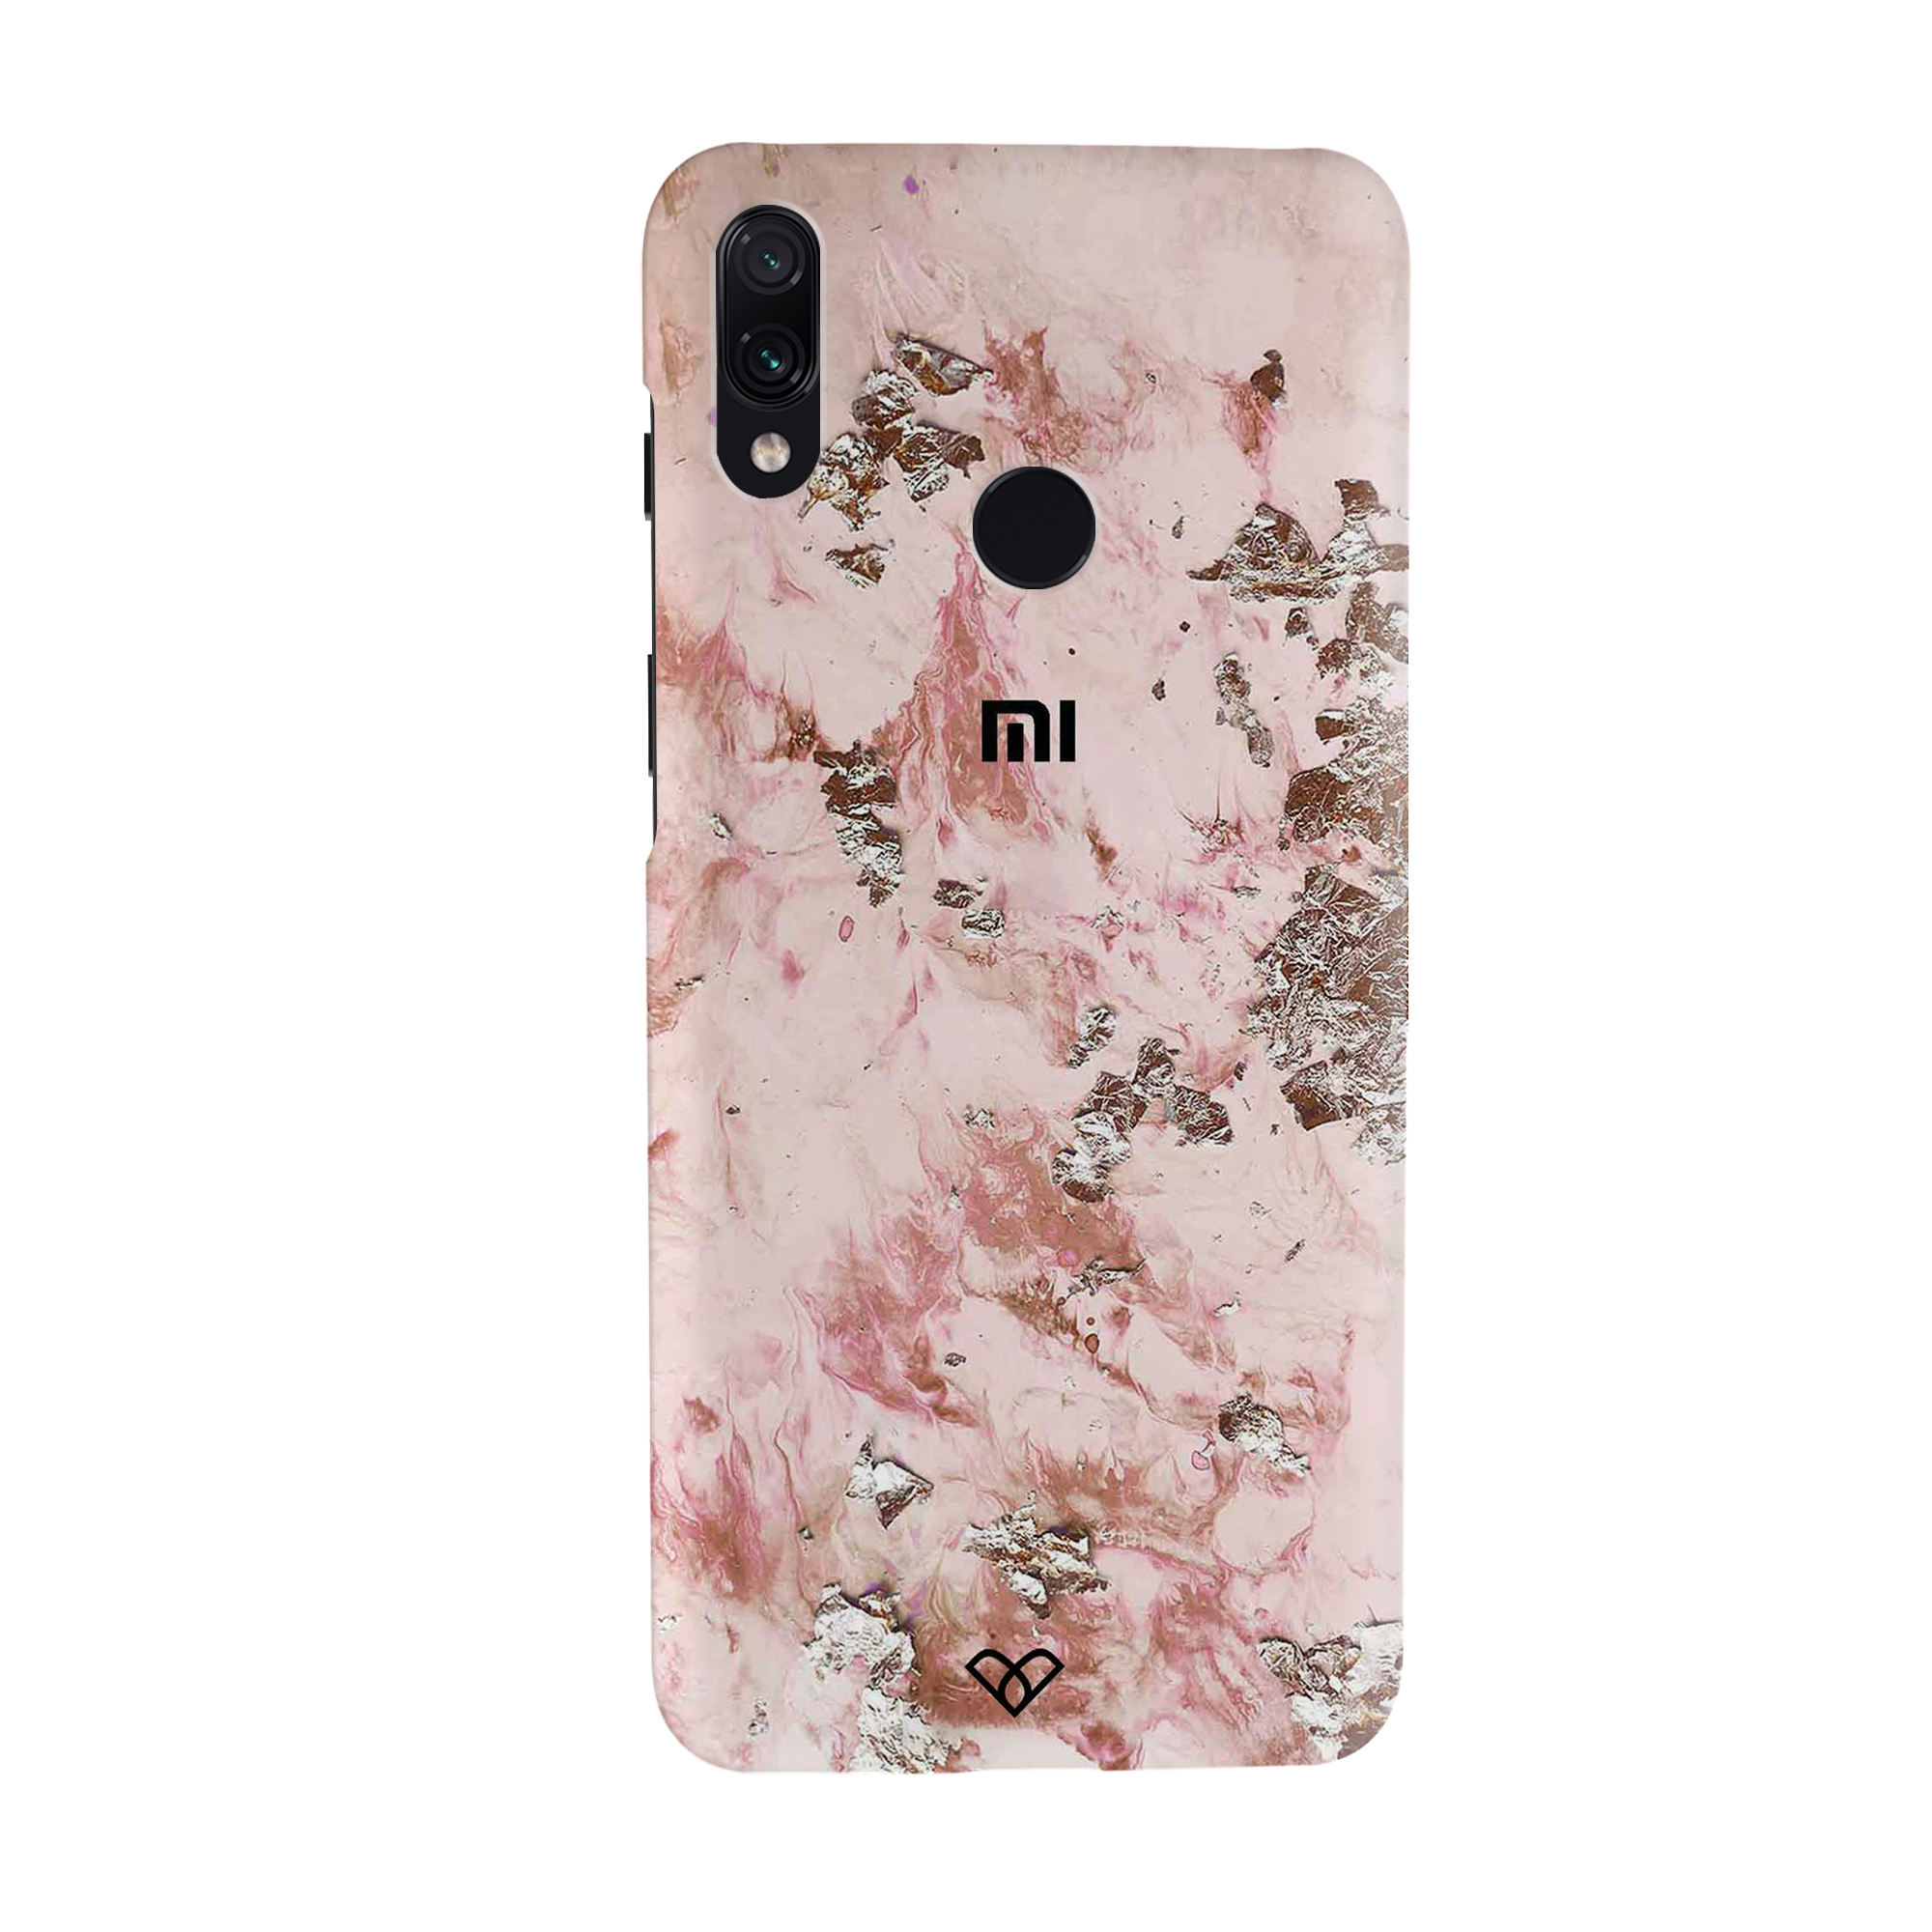 Pink Marble Slim Case And Cover For Redmi Note 7 Pro